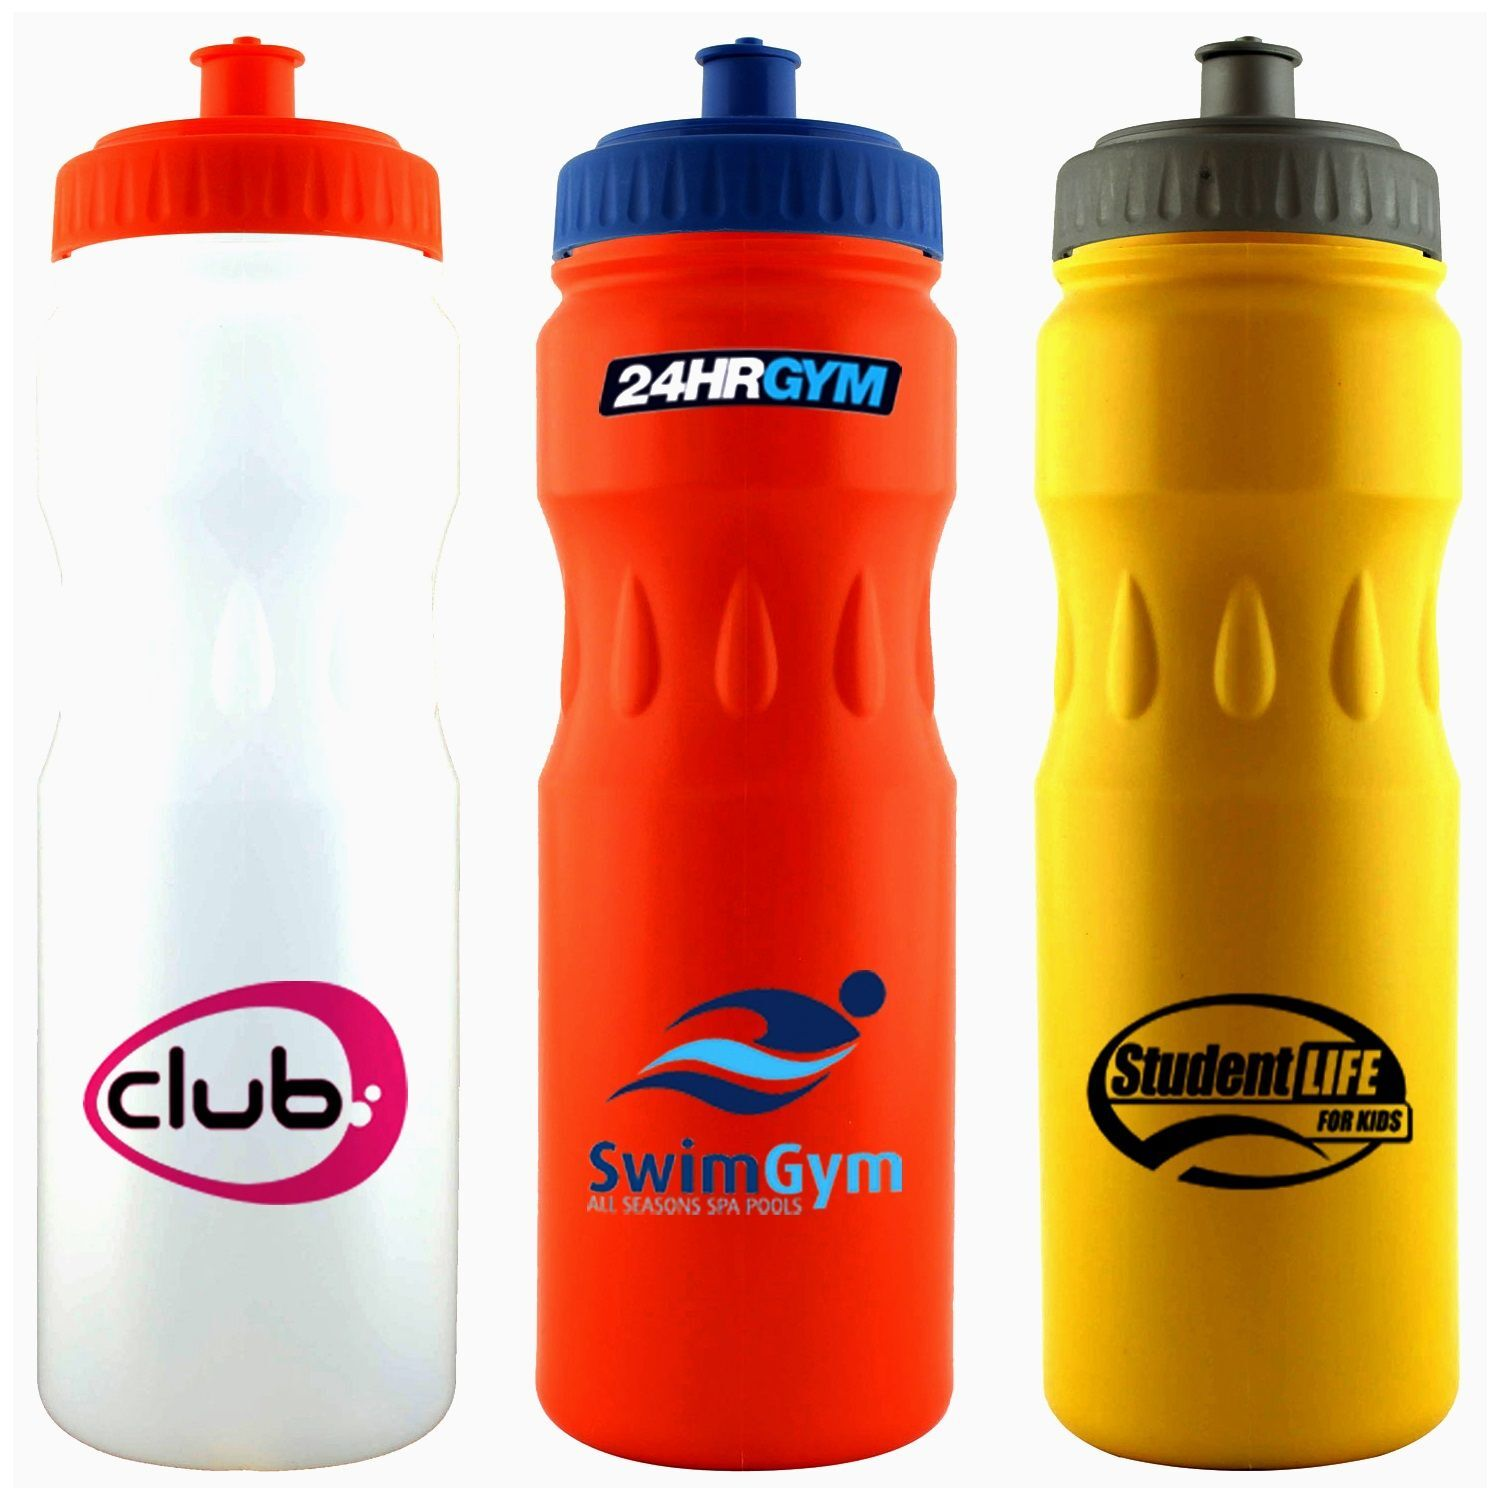 Large Sports Bottle Teardrop (White, Orange, Yellow)